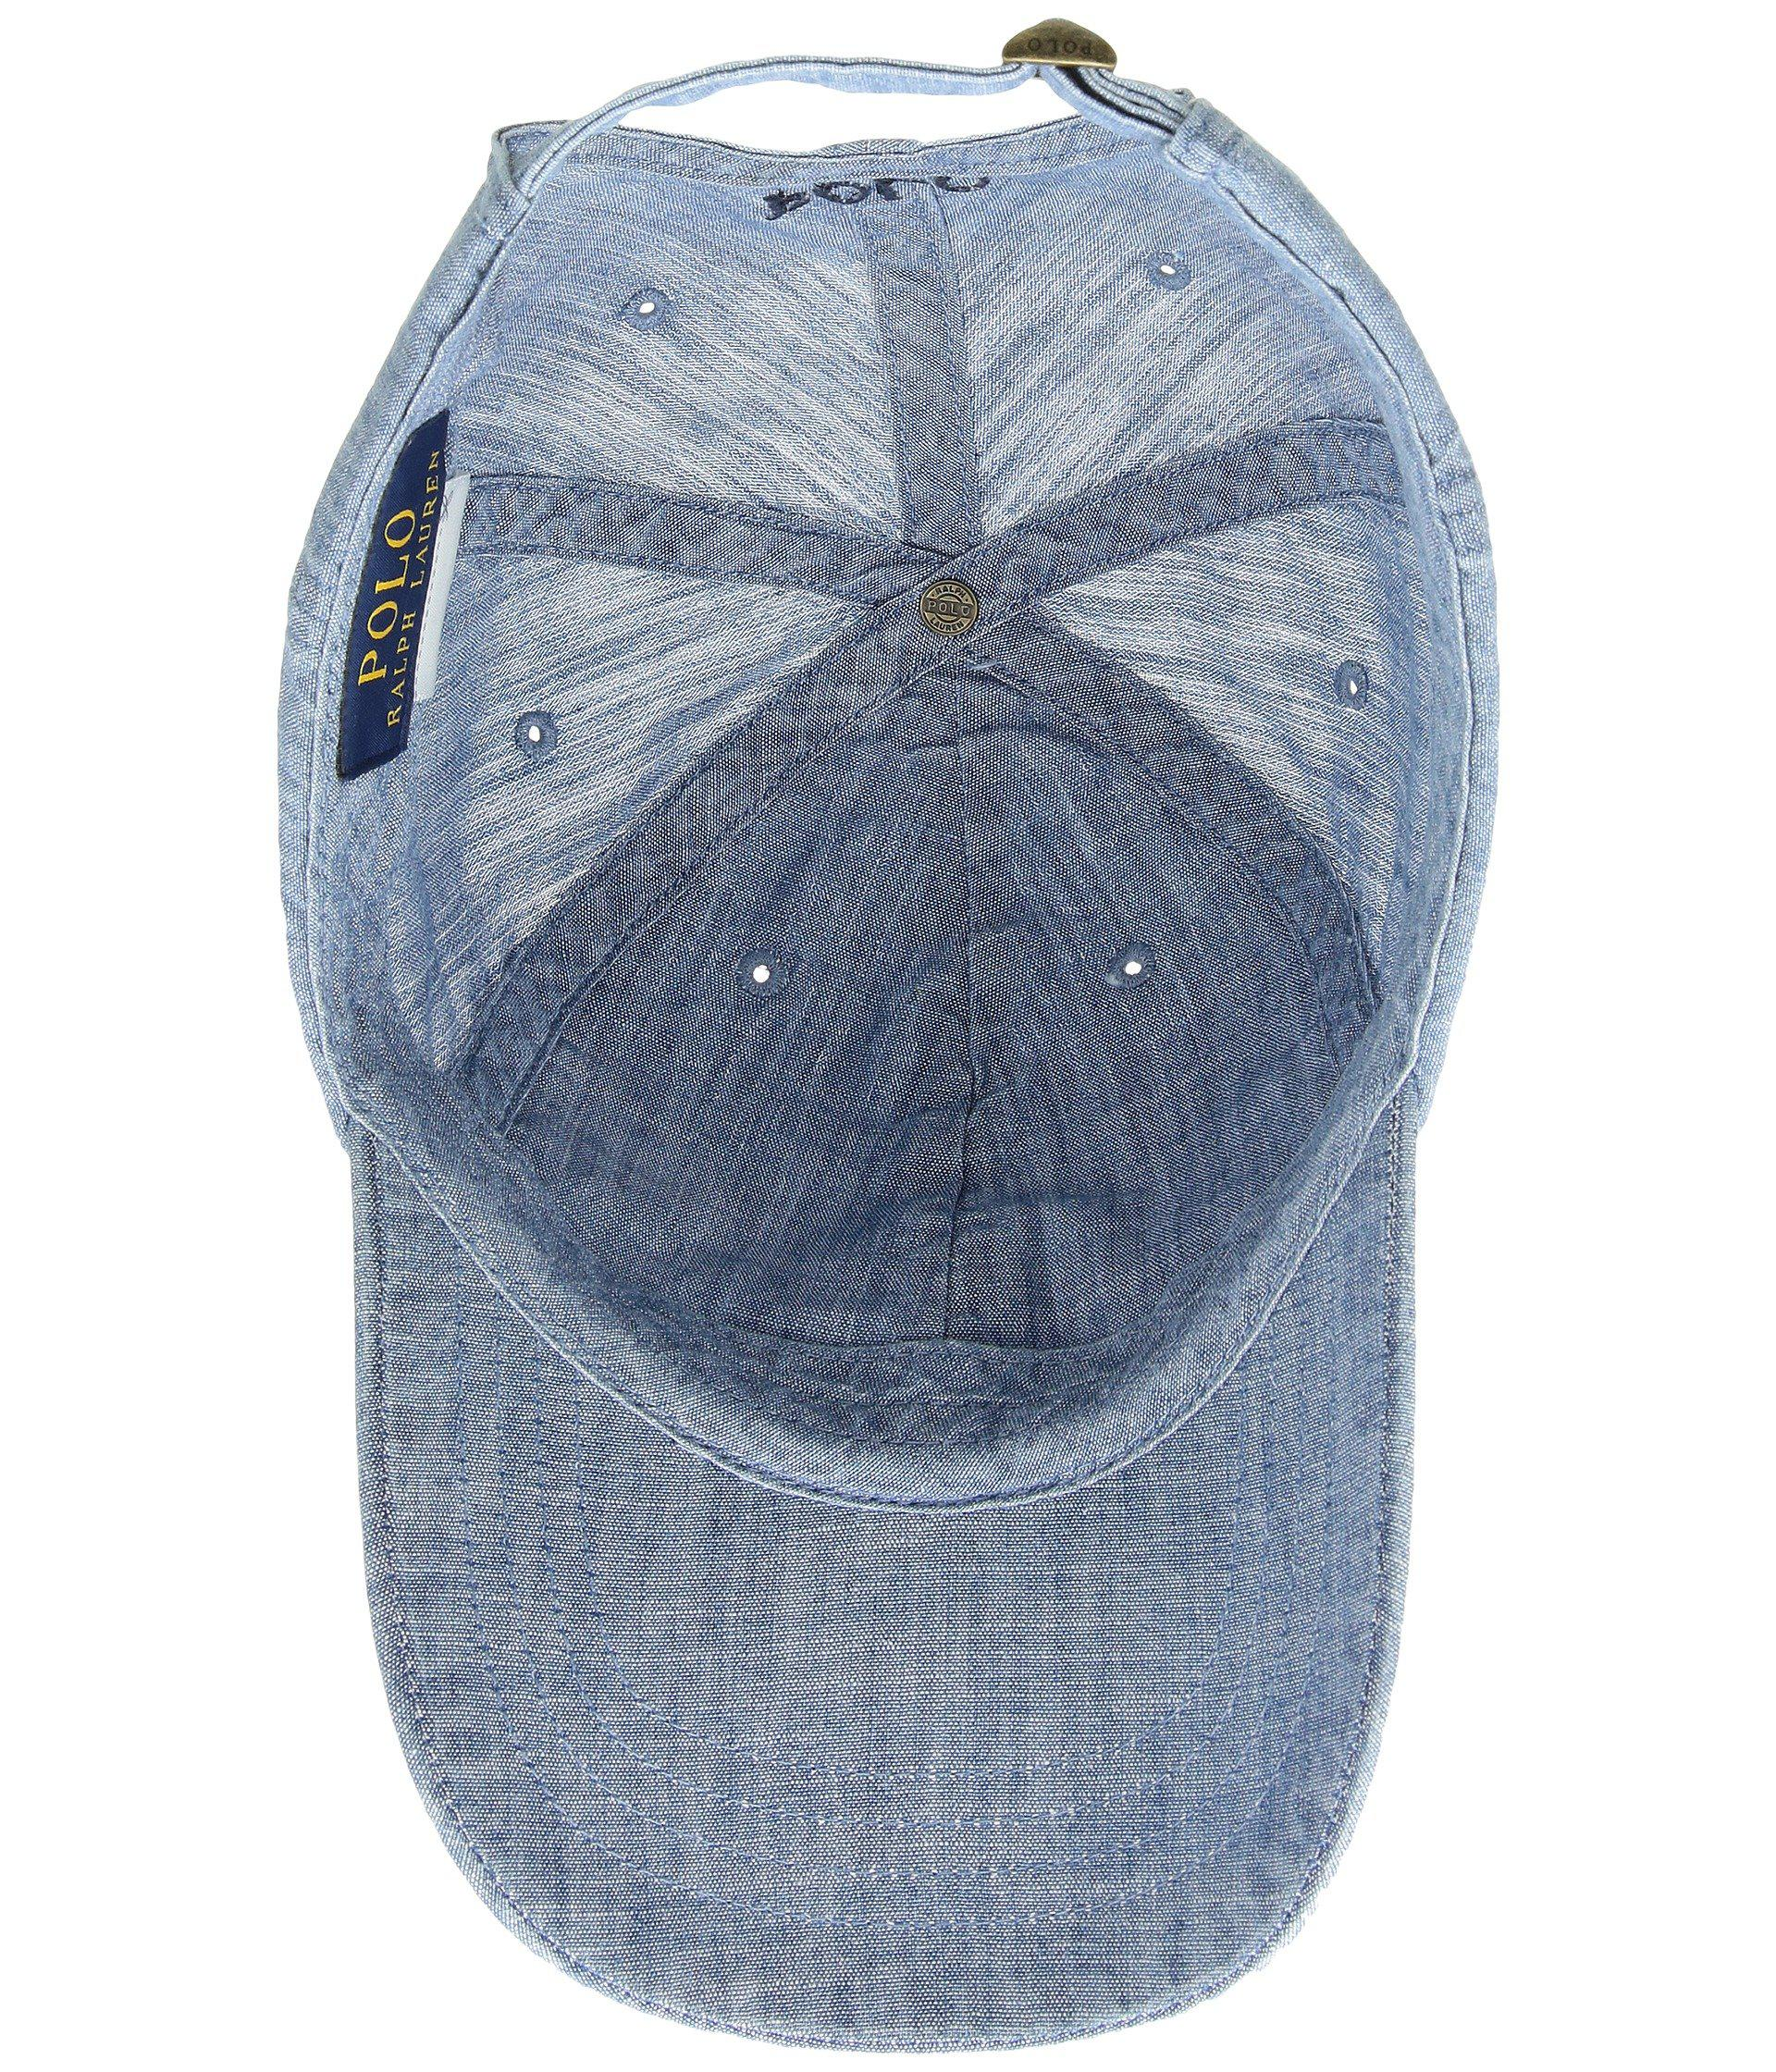 Lyst - Polo Ralph Lauren Classic Sport Cotton Chino Hat (chambray ... 35ae9f1aff5f